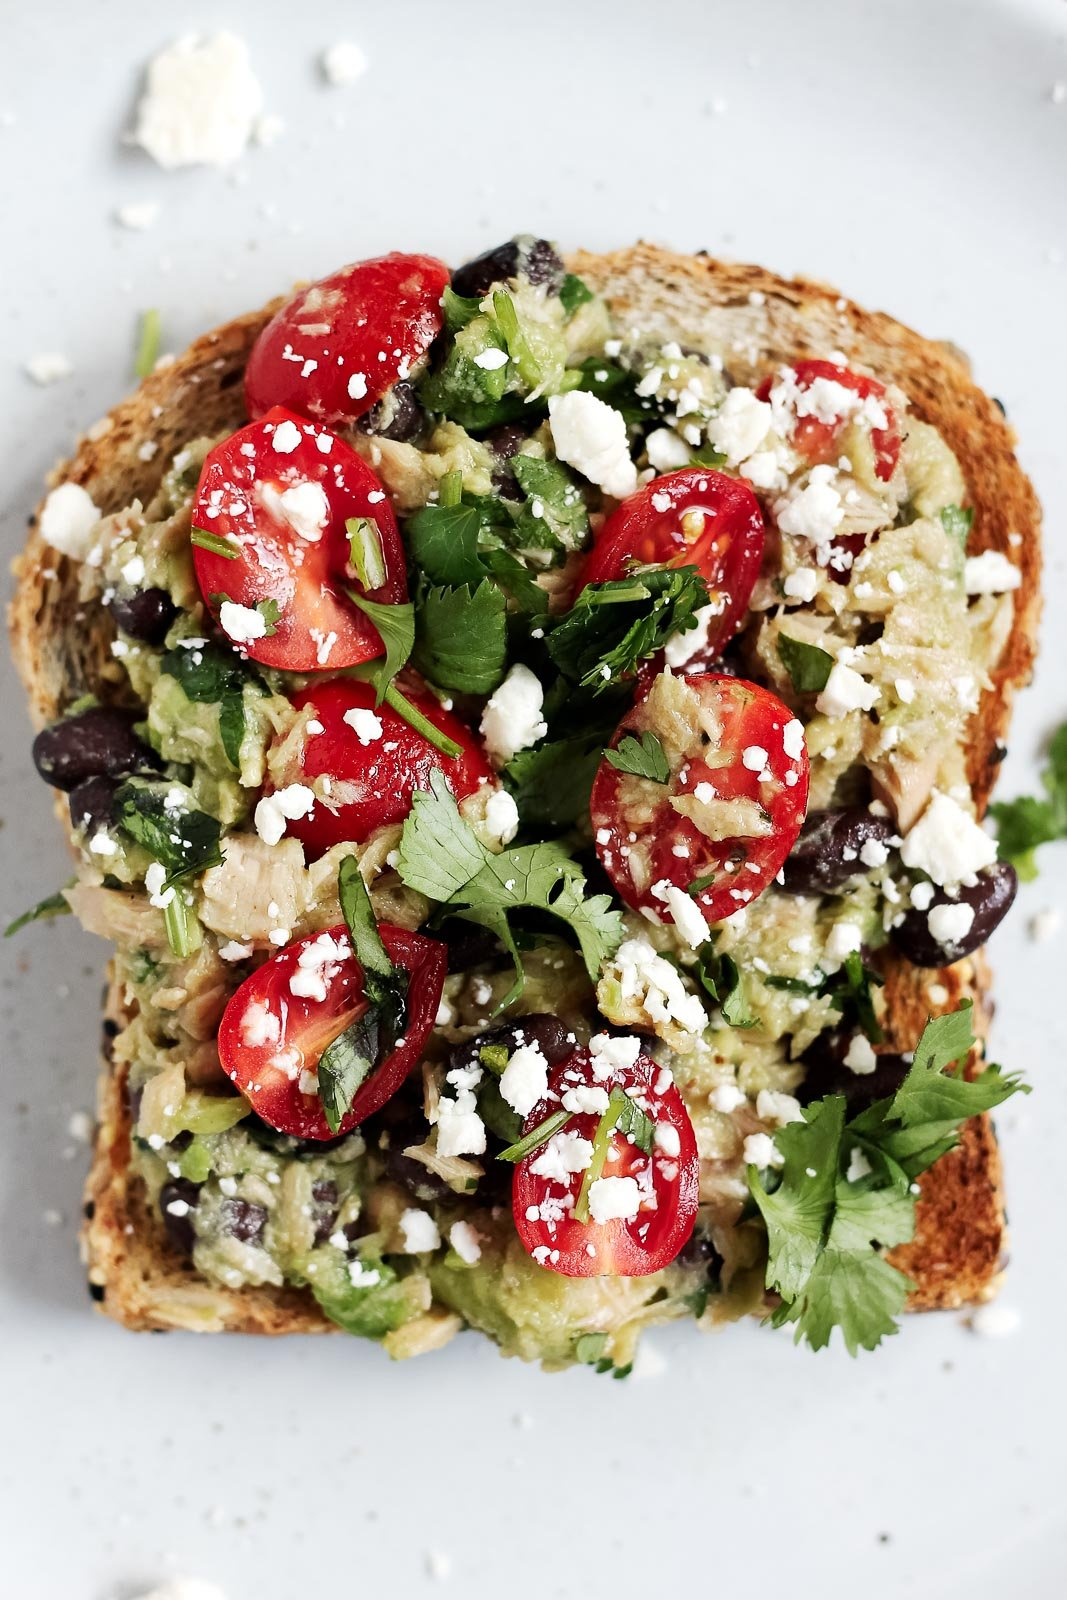 Healthy high-protein avocado tuna salad sandwiches with fiber-rich black beans, tomatoes and cilantro! This recipe takes 5 minutes to make and is a wonderful, healthy no-cook lunch!